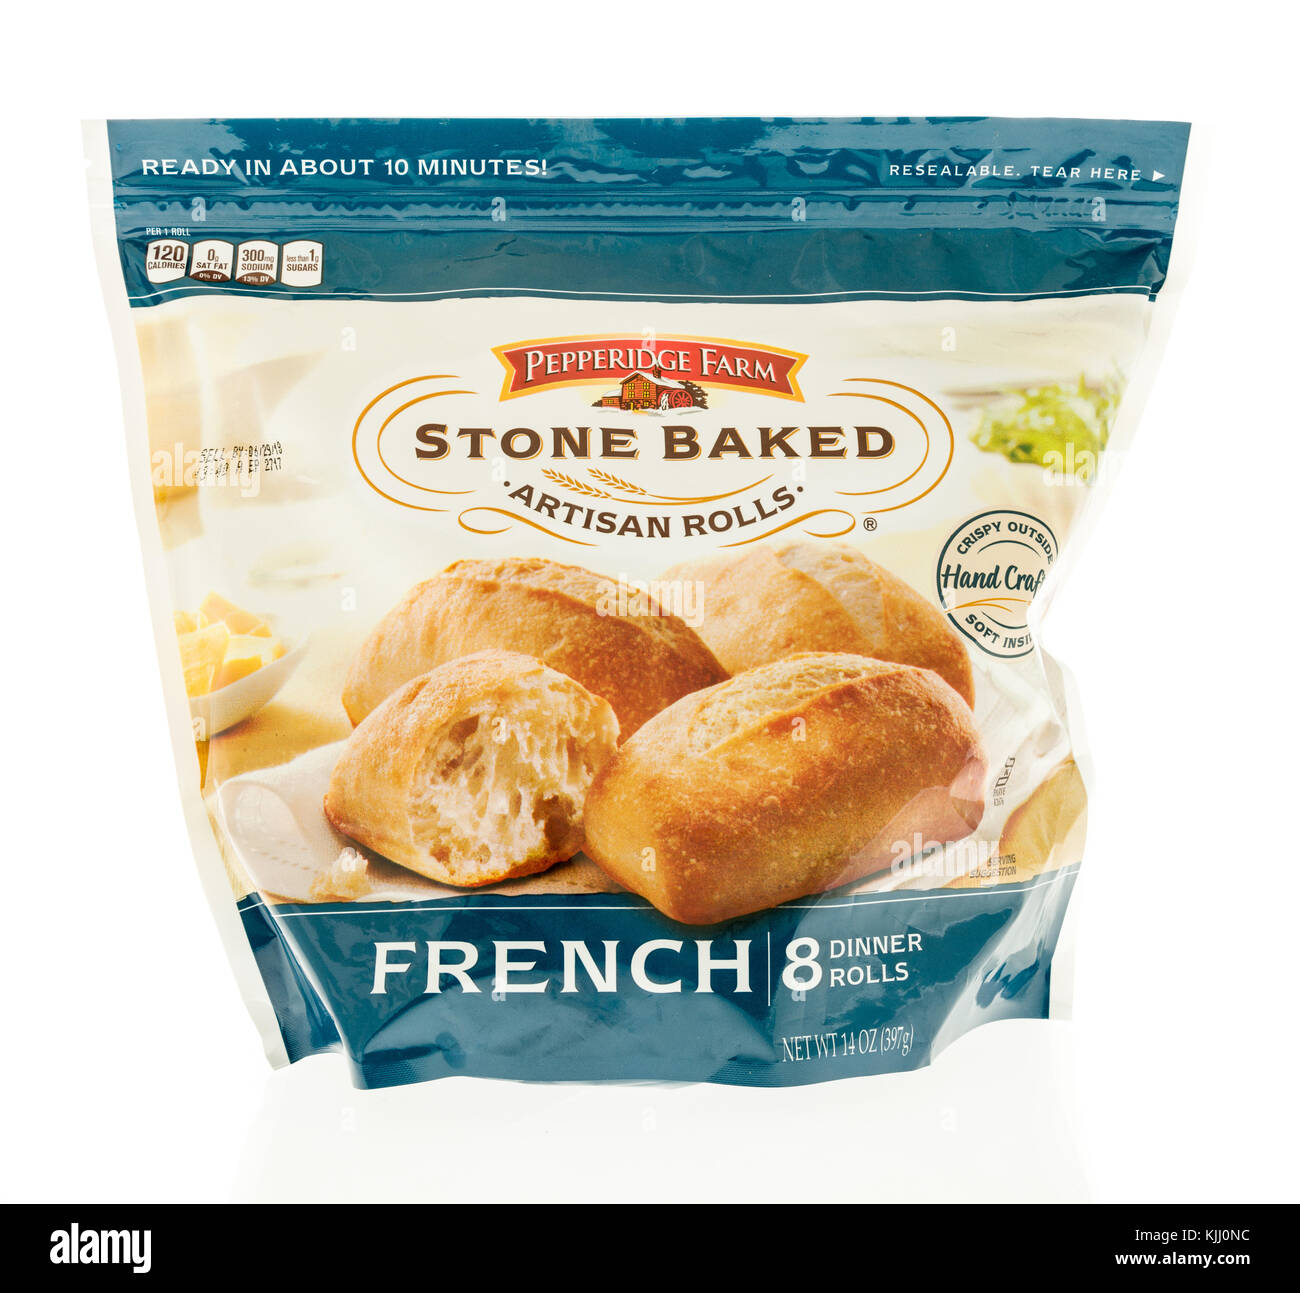 Winneconne, WI - 23 November 2017:  A bag of Pepperidge Farm stone baked artisan rolls on an on an isolated background. - Stock Image